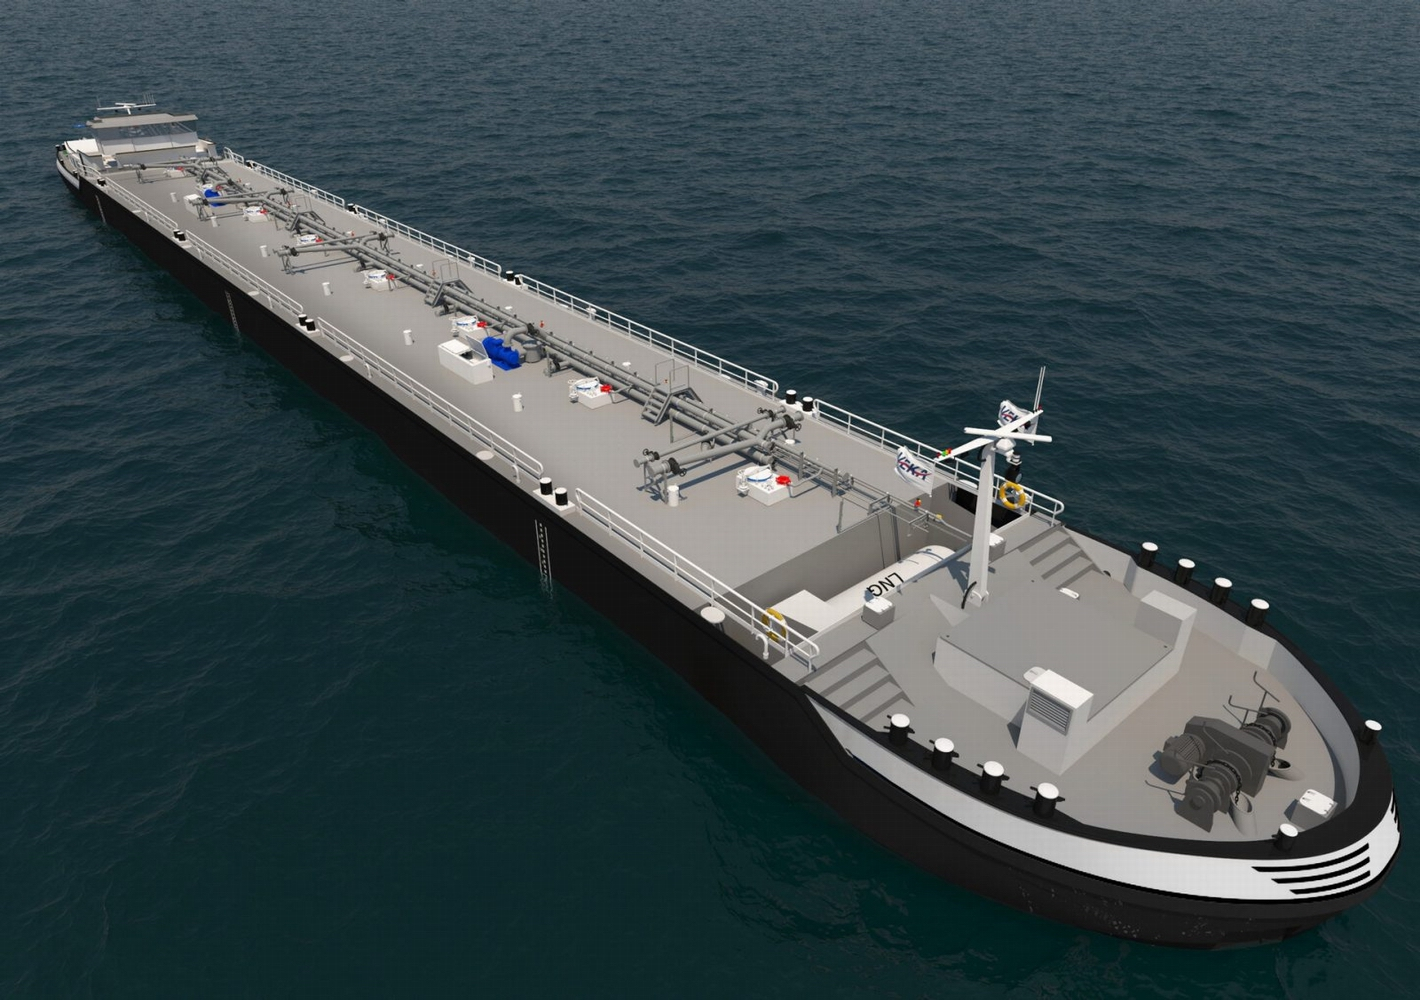 LNG barges partly built at Centromost to be powered by Wärtsilä engines